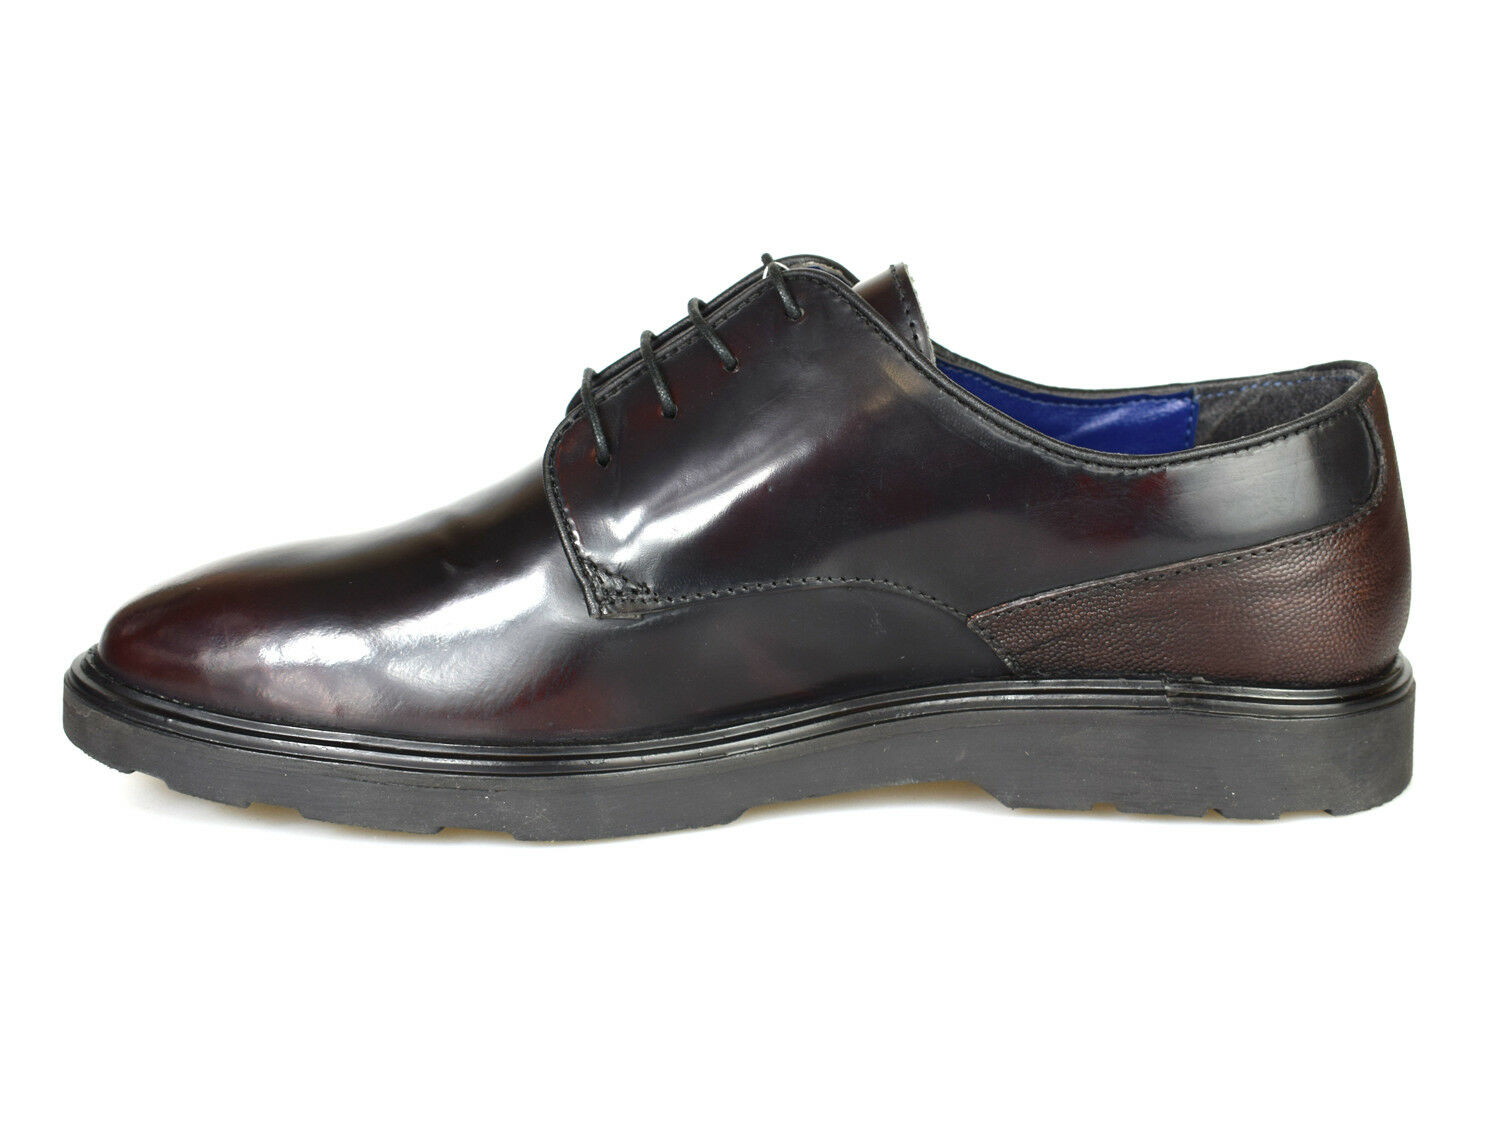 Silber Street London London London Ruskin Oxblood Patent Leather schuhe   Free UK P&P  521cc6